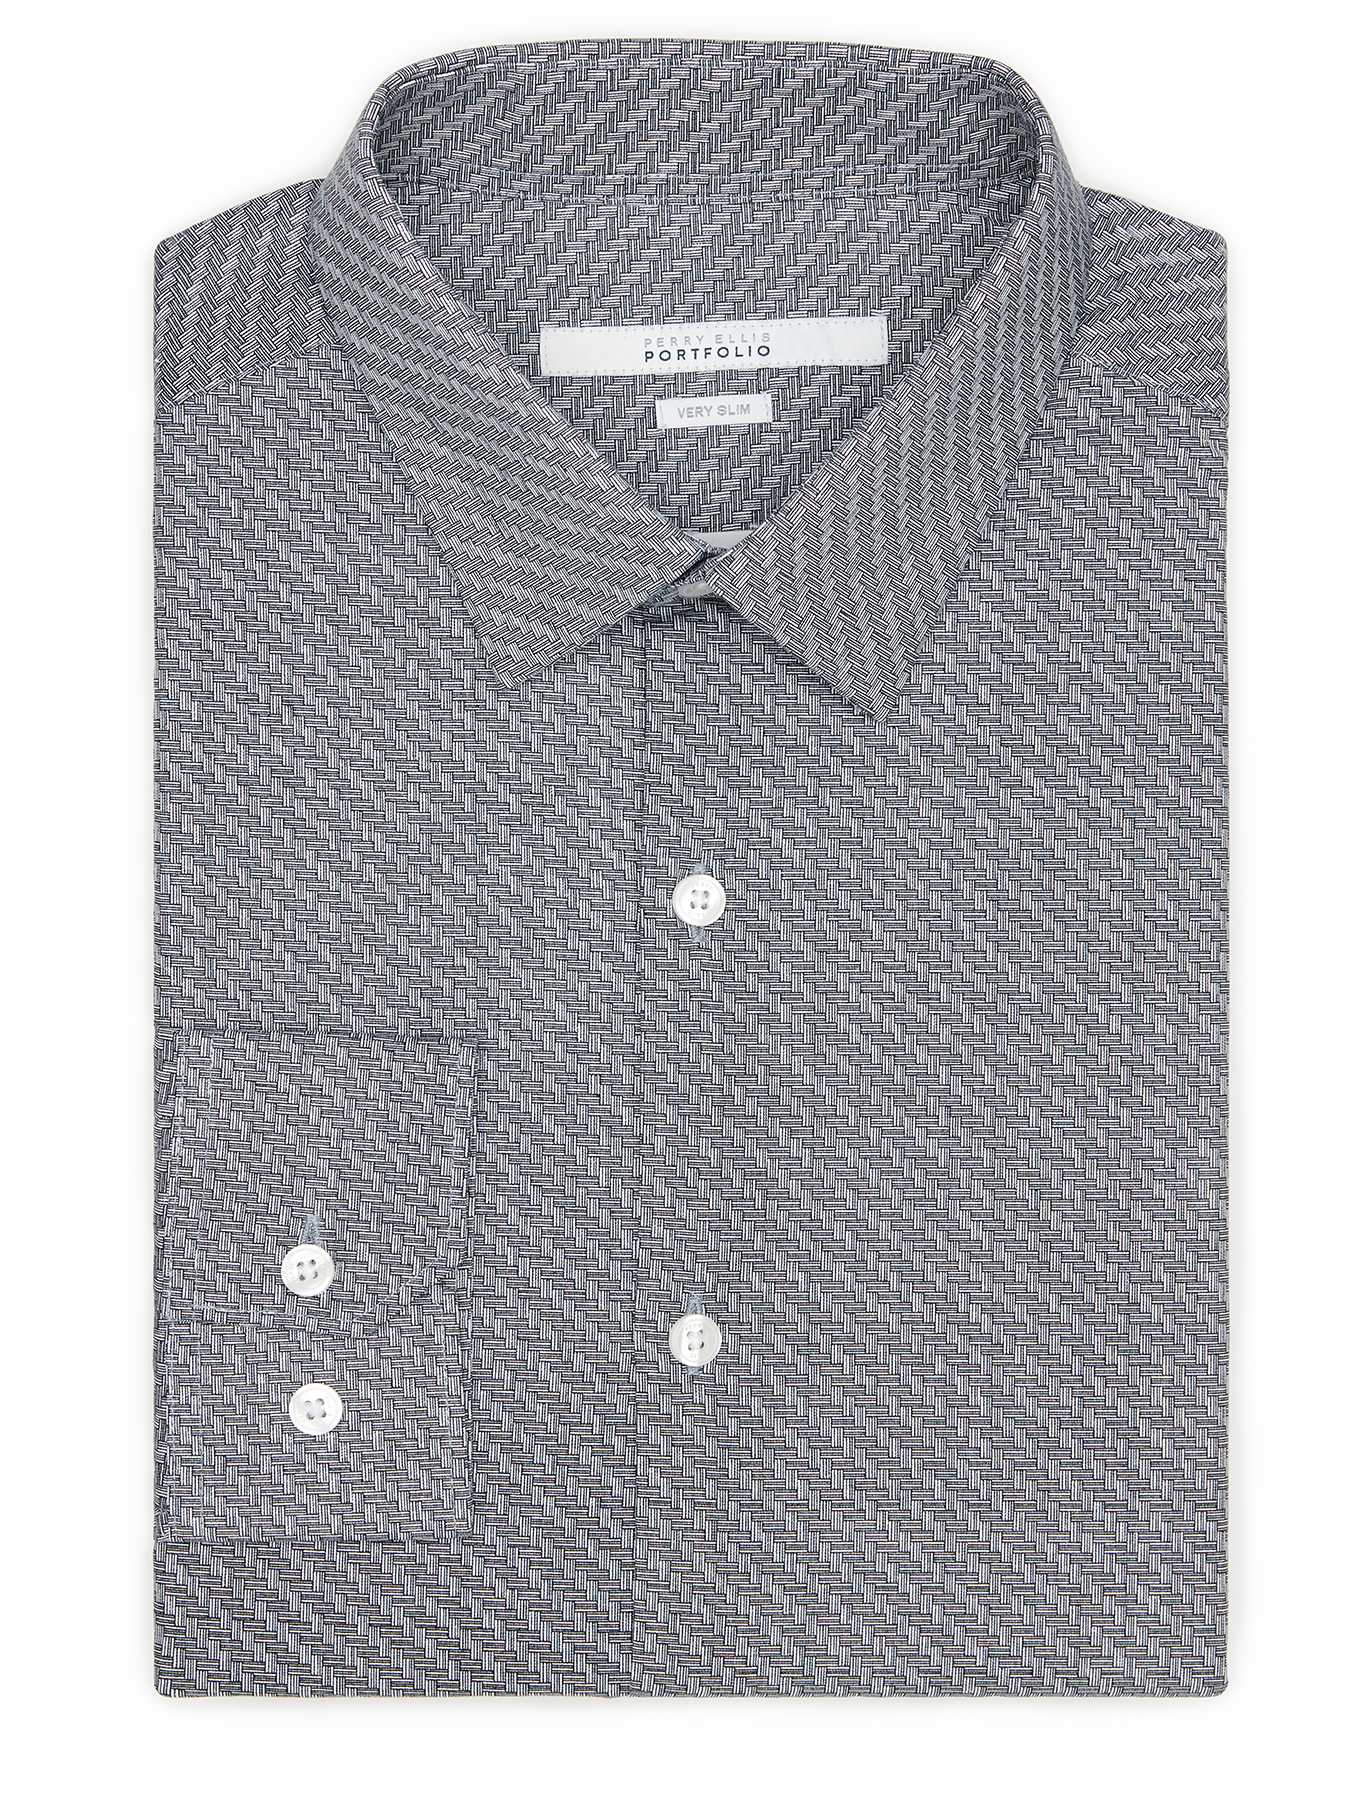 Perry Ellis Very Slim Twill Tile Dress Shirt